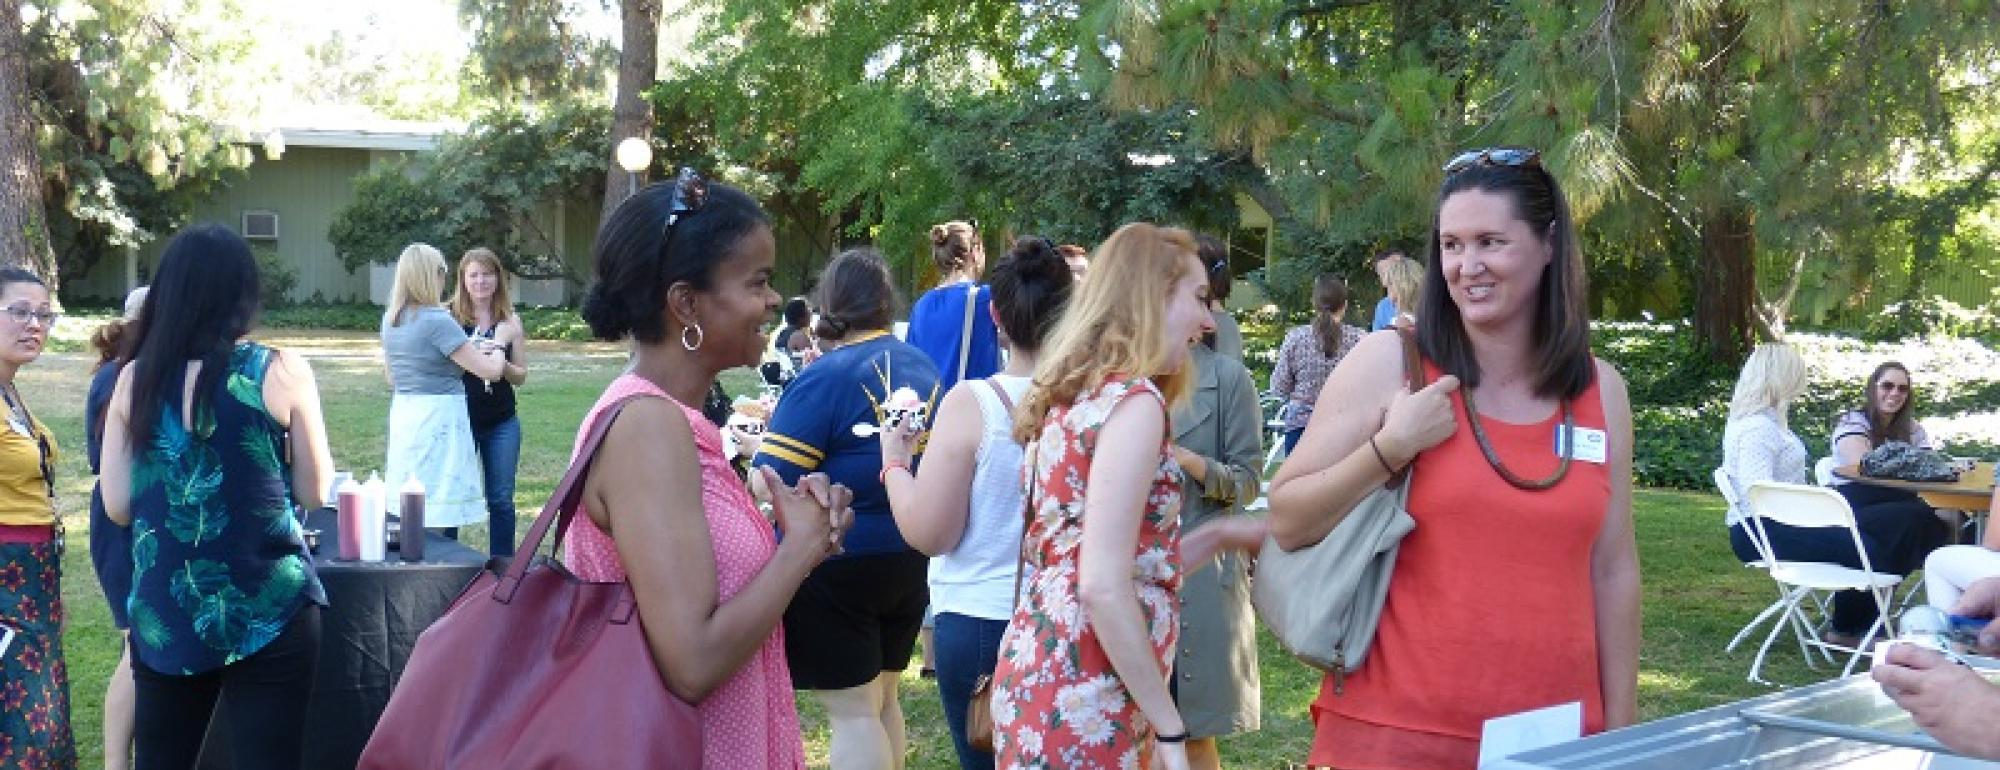 Advisors chat with smiles during outdoor event.